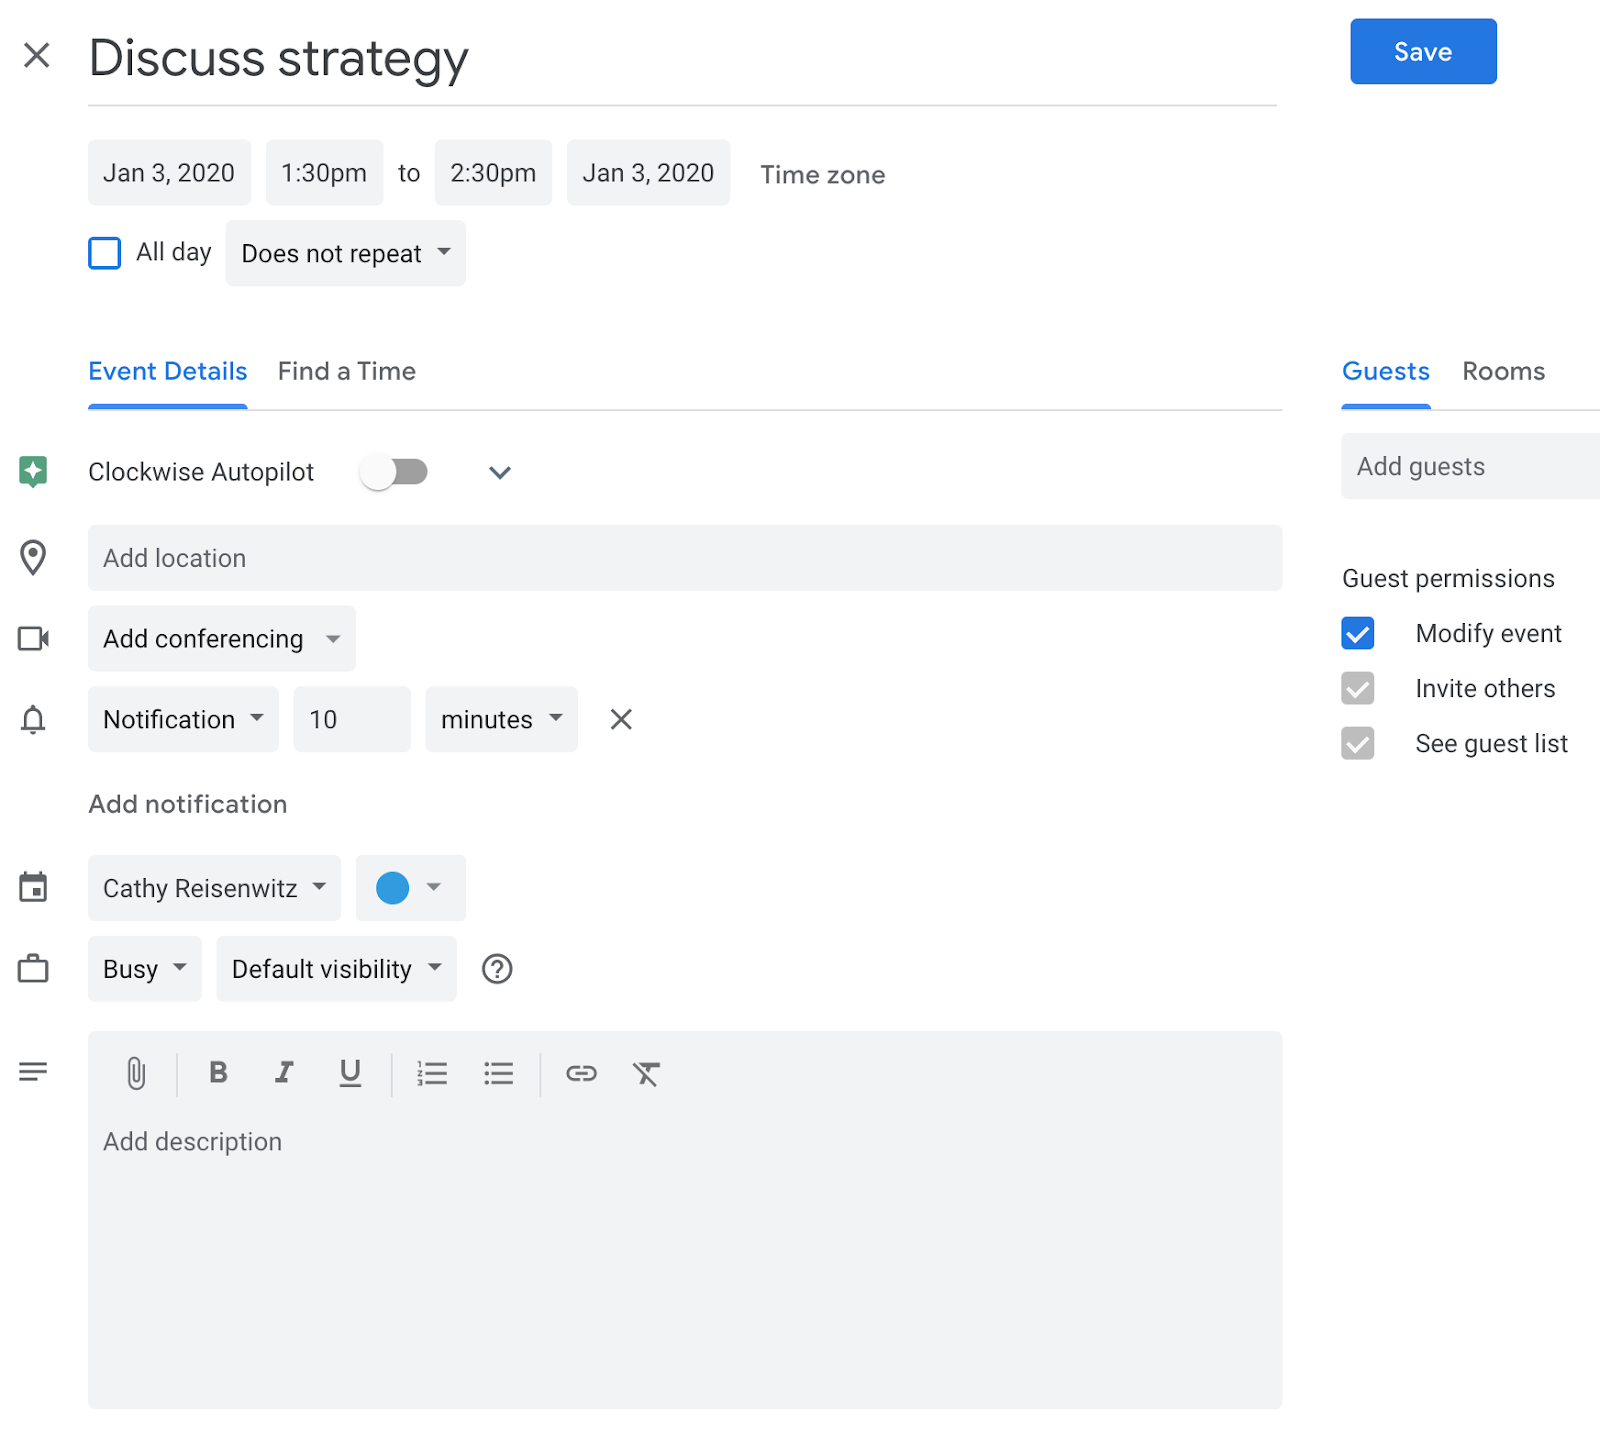 How to let attendees modify an event in Google Calendar